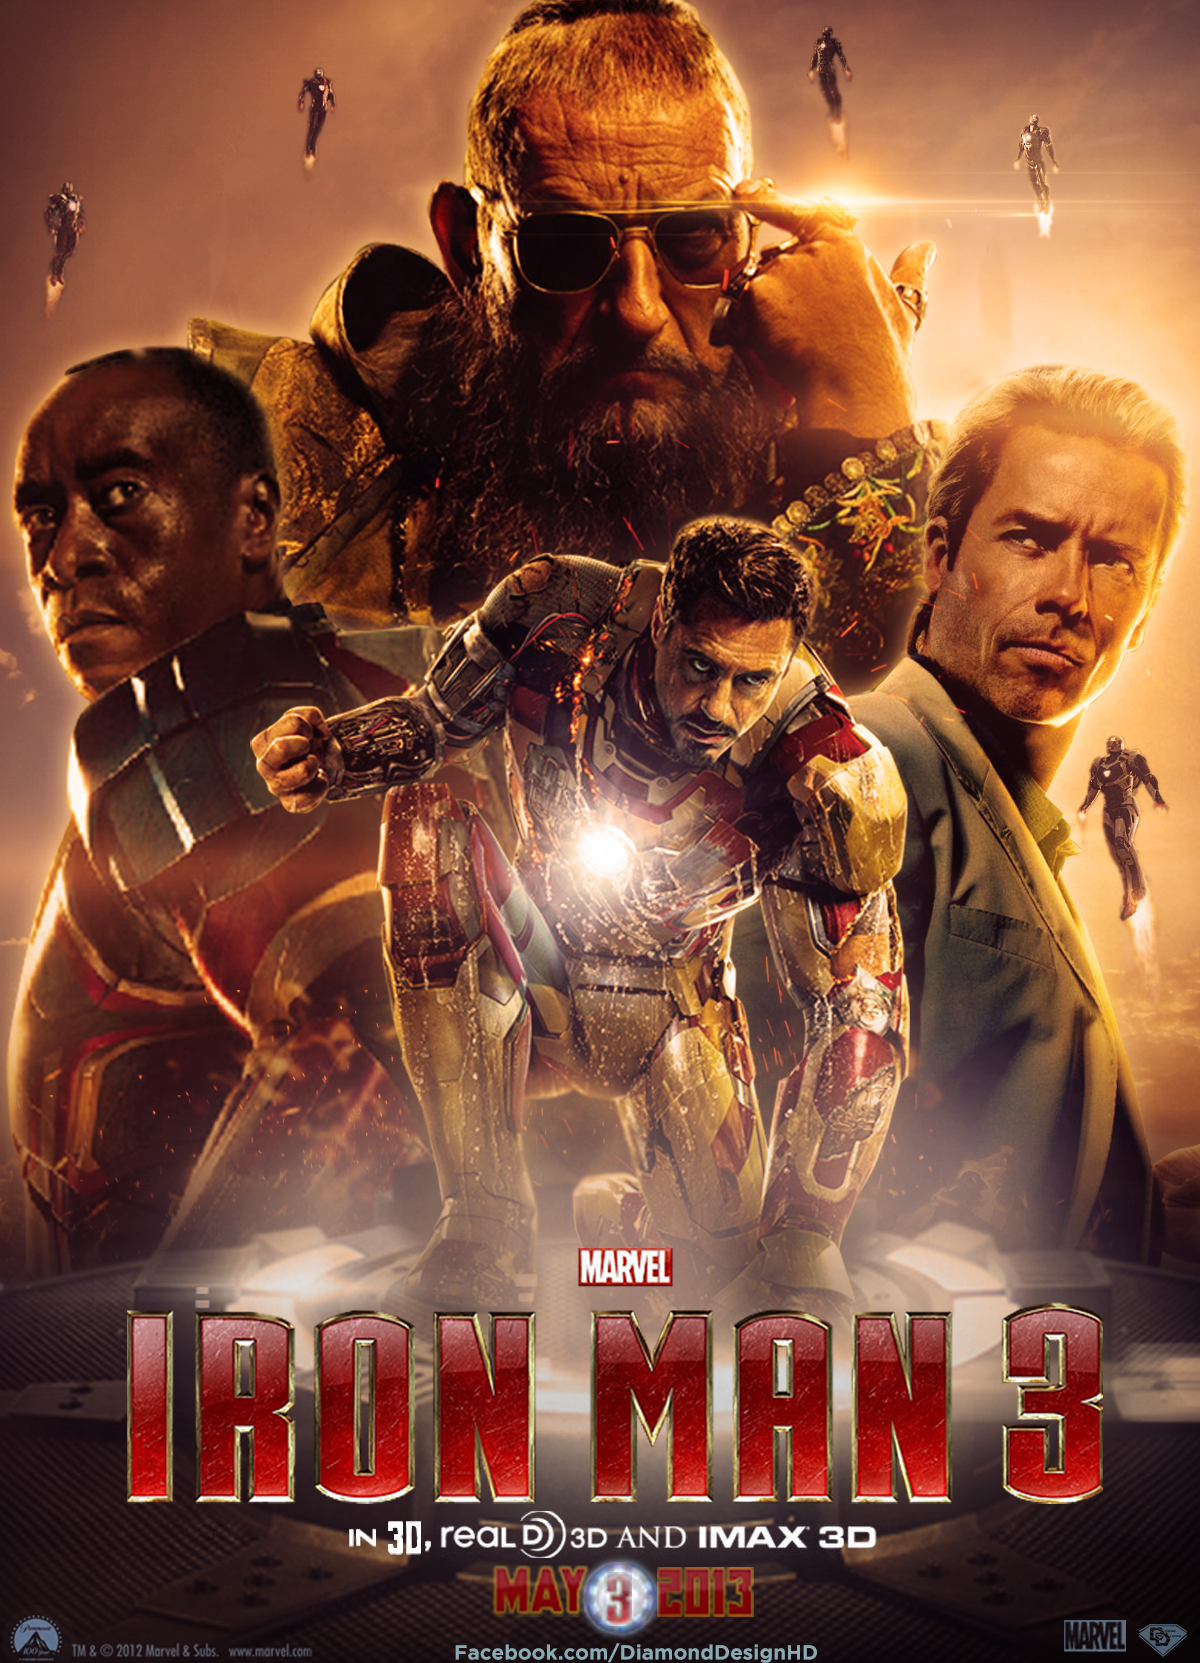 Iron man images iron man 3 fan made poster hd wallpaper for 3 by 3 prints